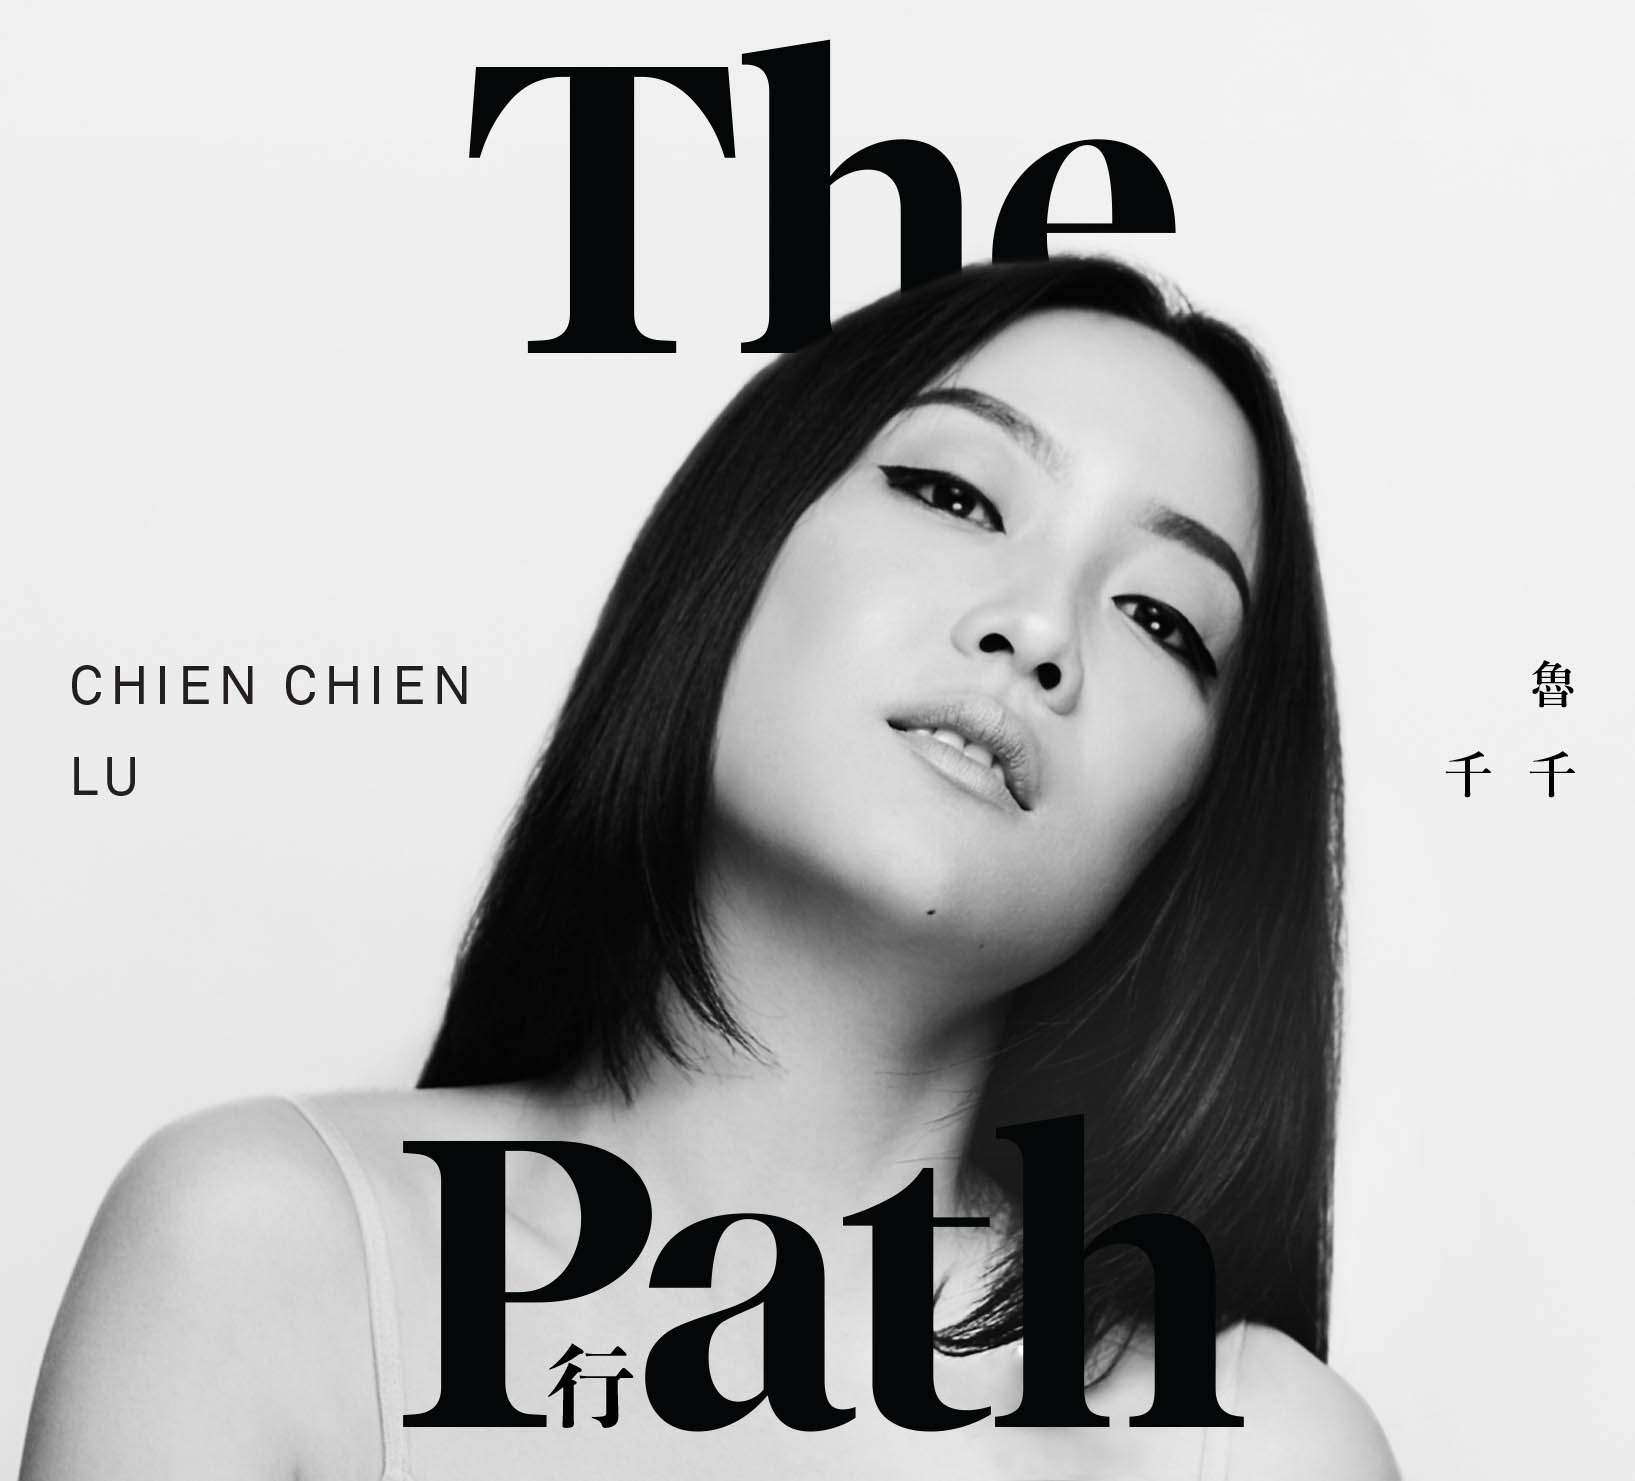 NEW RELEASE: Chien Chien Lu's Debut THE PATH due out September 23, 2020